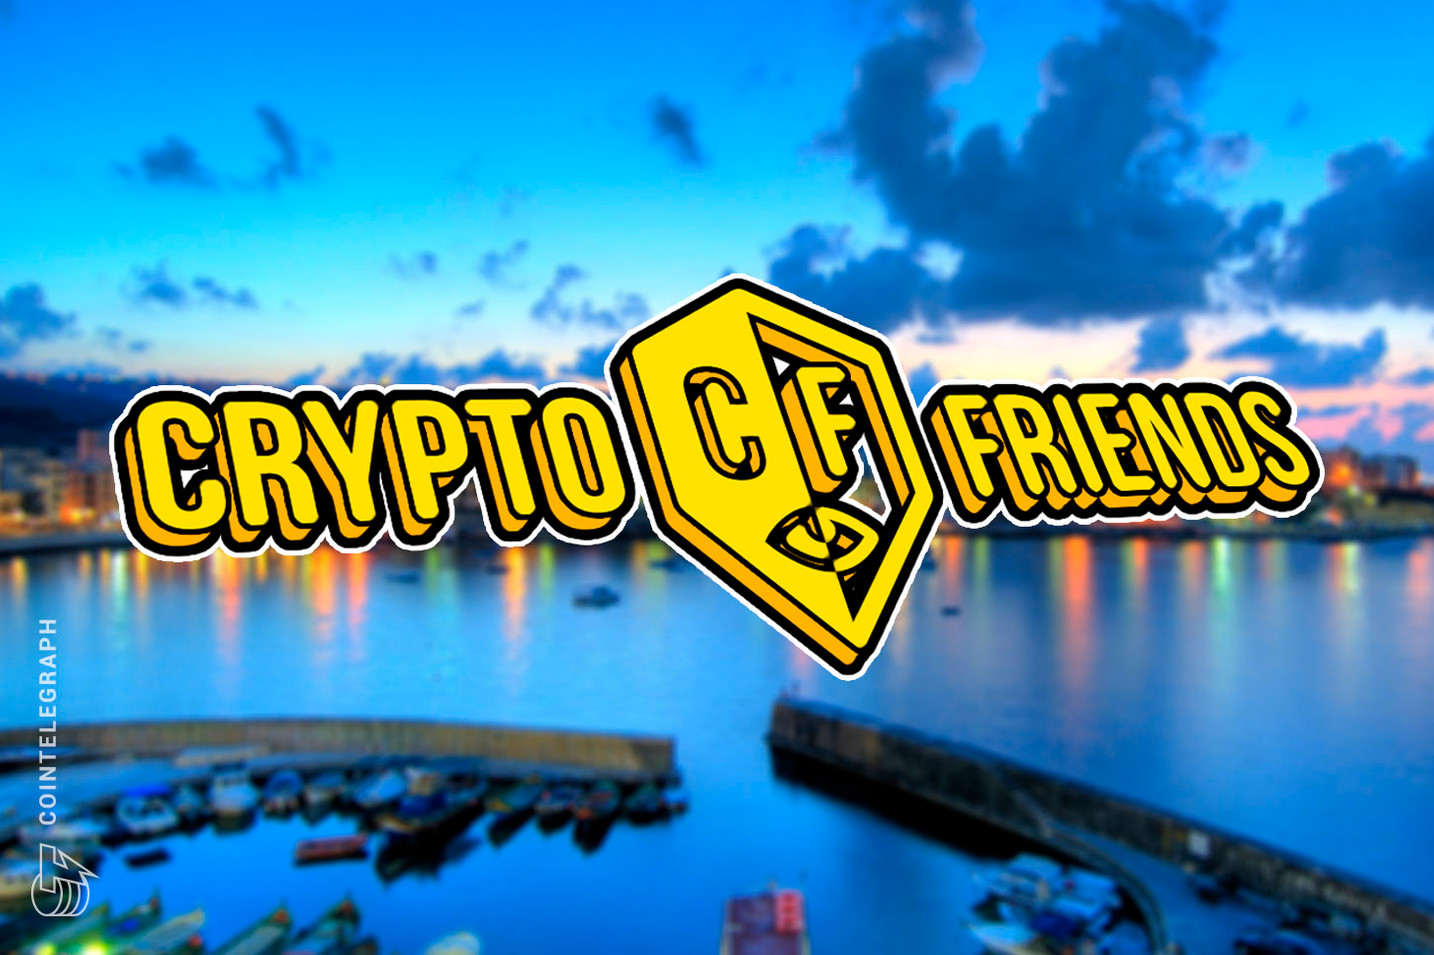 CryptoFriends and ICO Bench Partner with Malta Blockchain Summit to Offer Unmissable Opportunities for ICOs This Summer